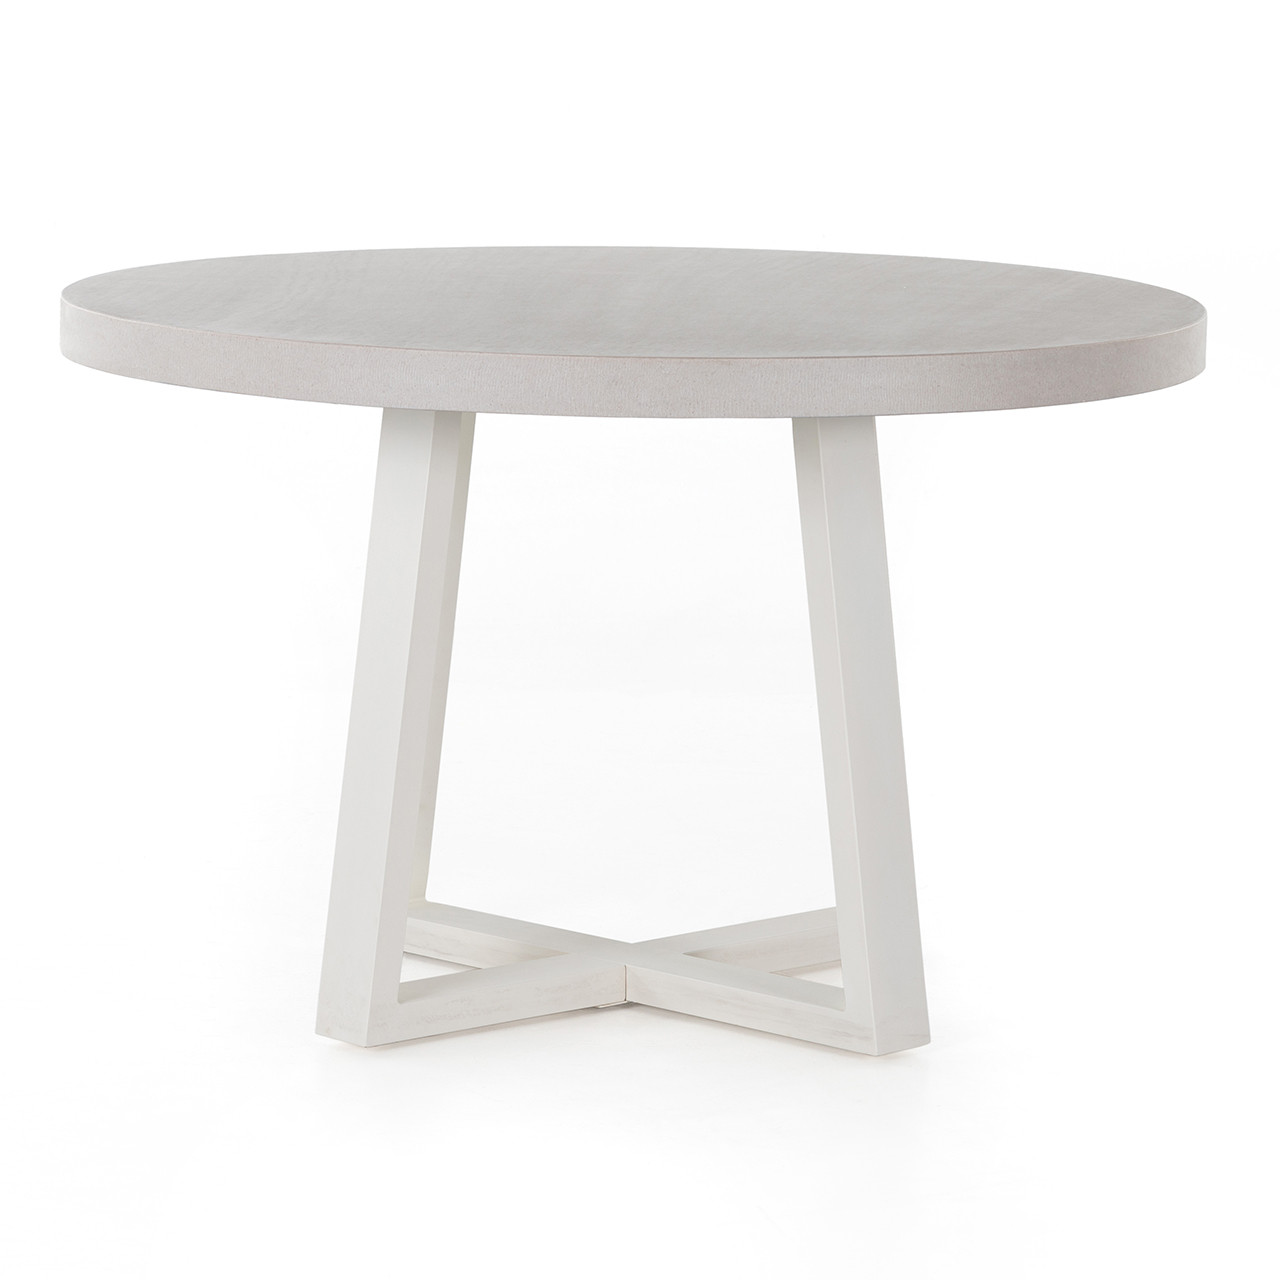 Lola Outdoor Round Dining Table